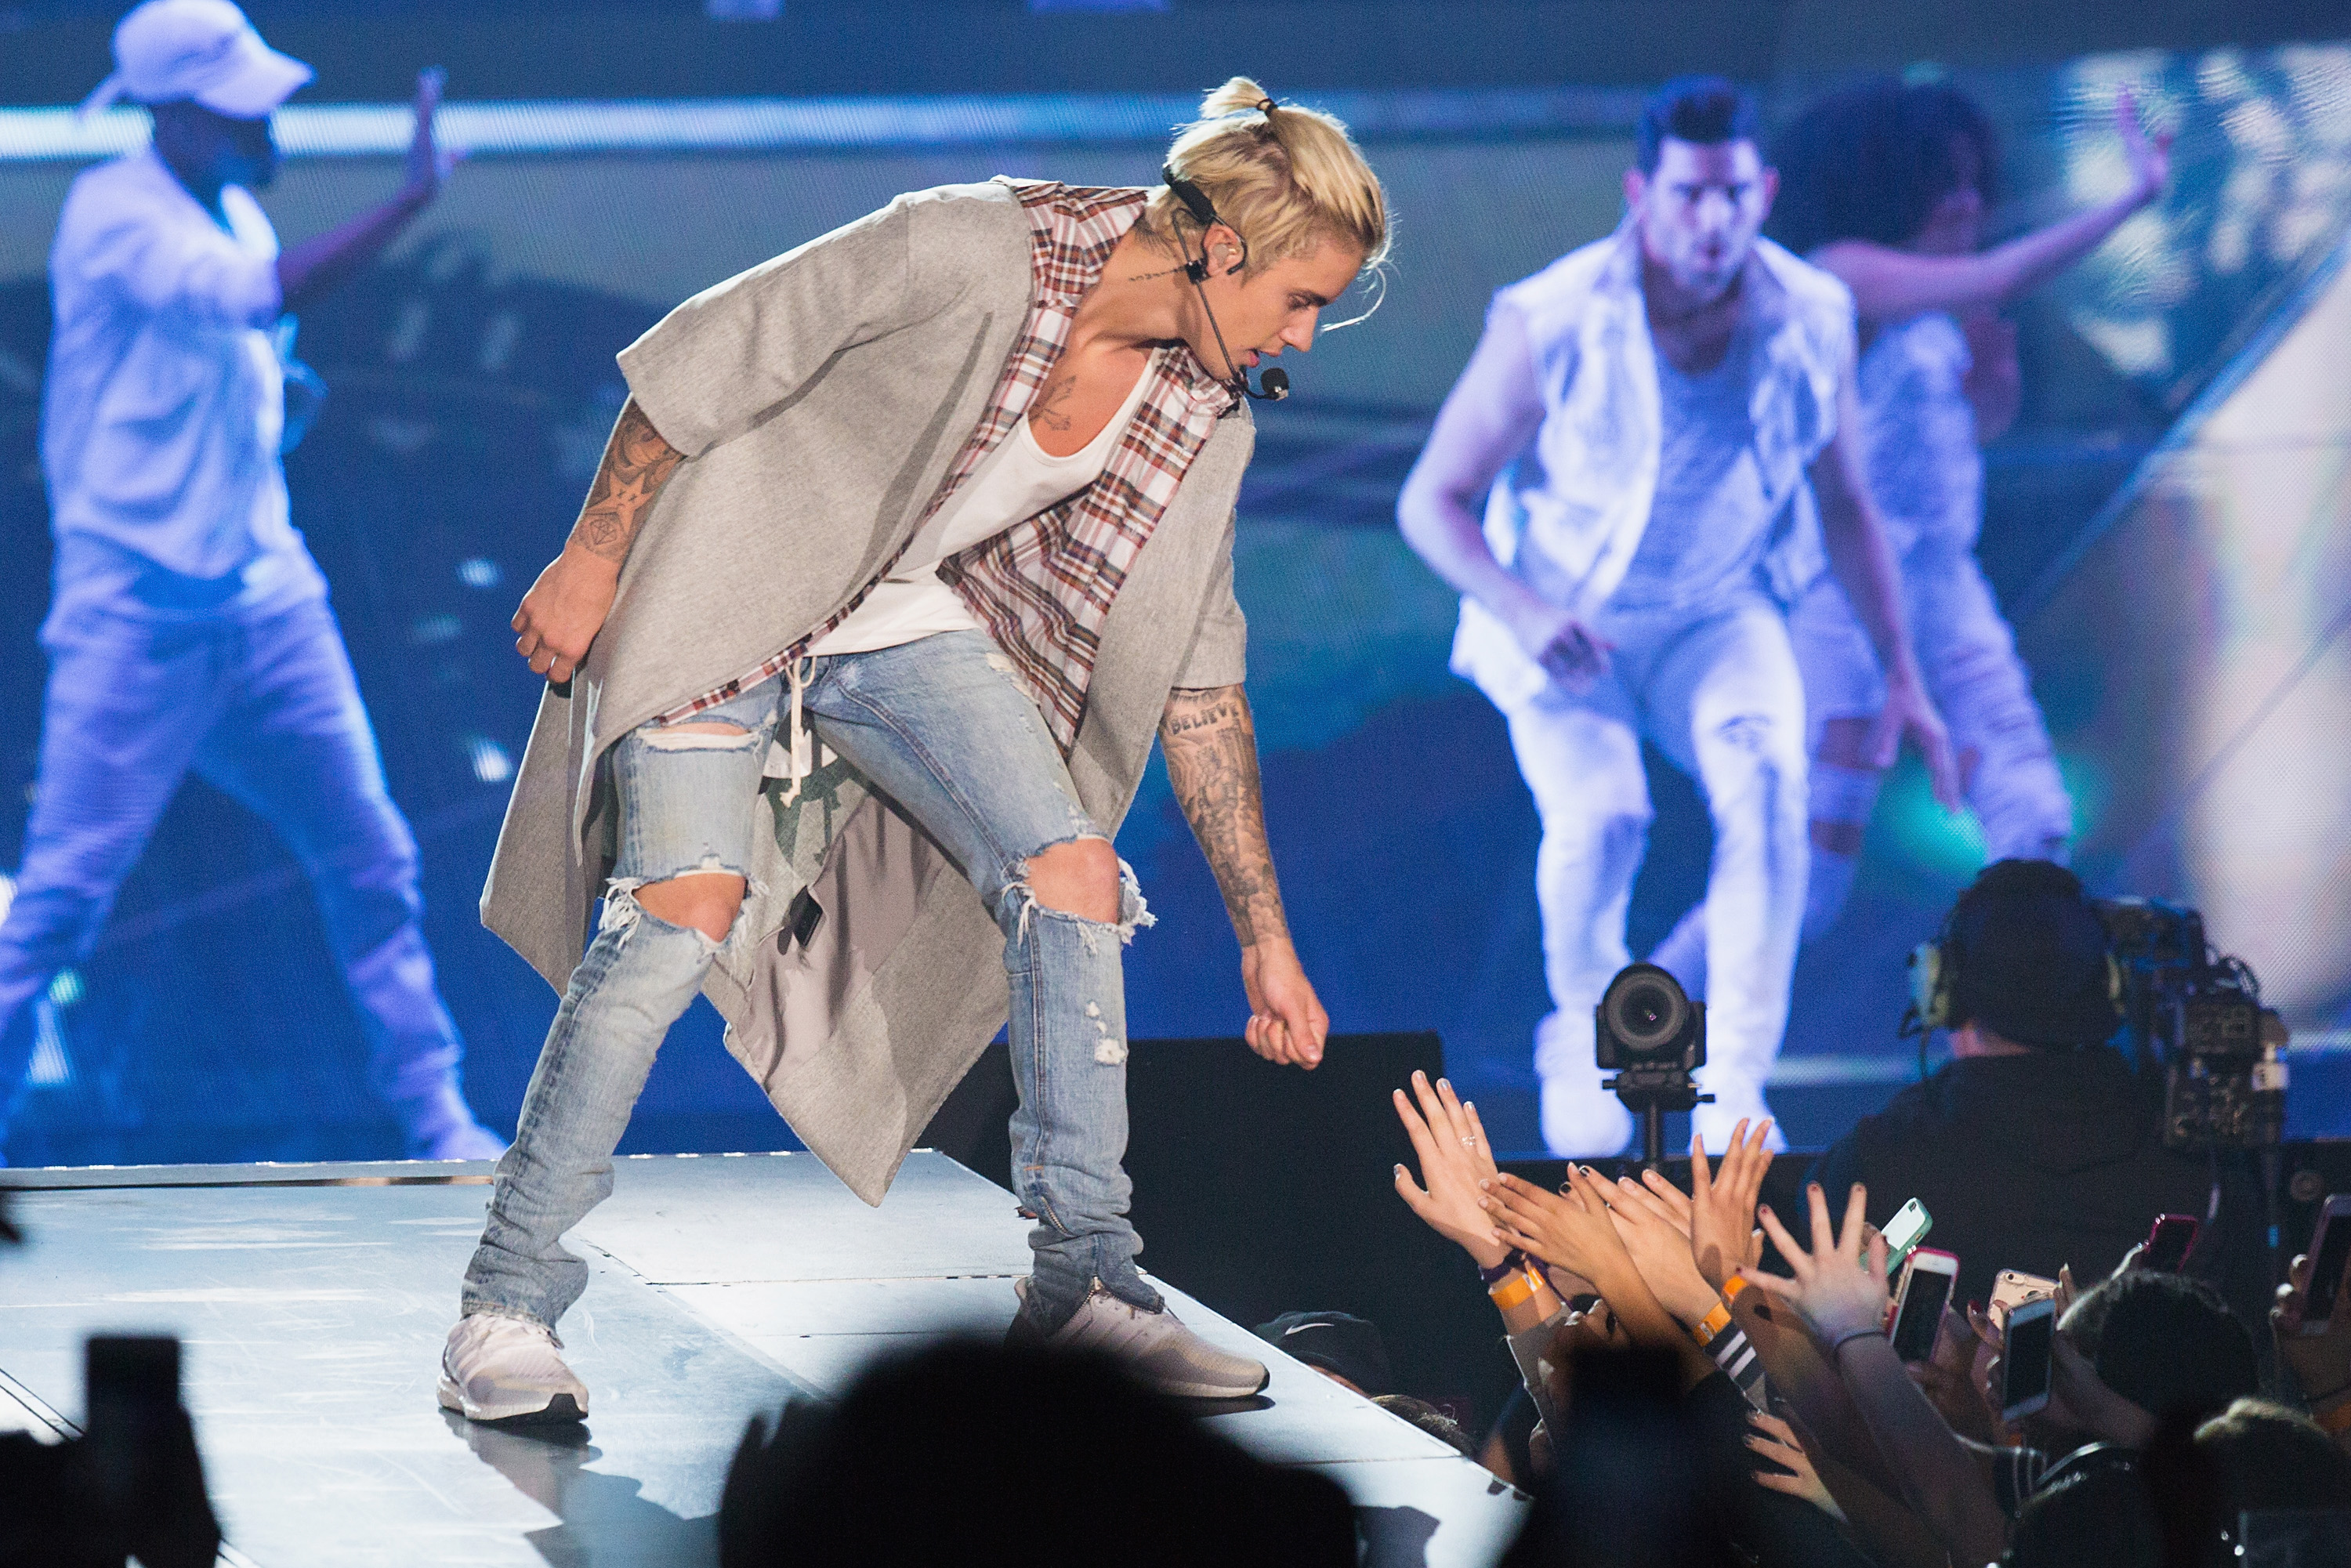 Fans Paid 2k To Meet Justin Bieber Say They Got Photo With